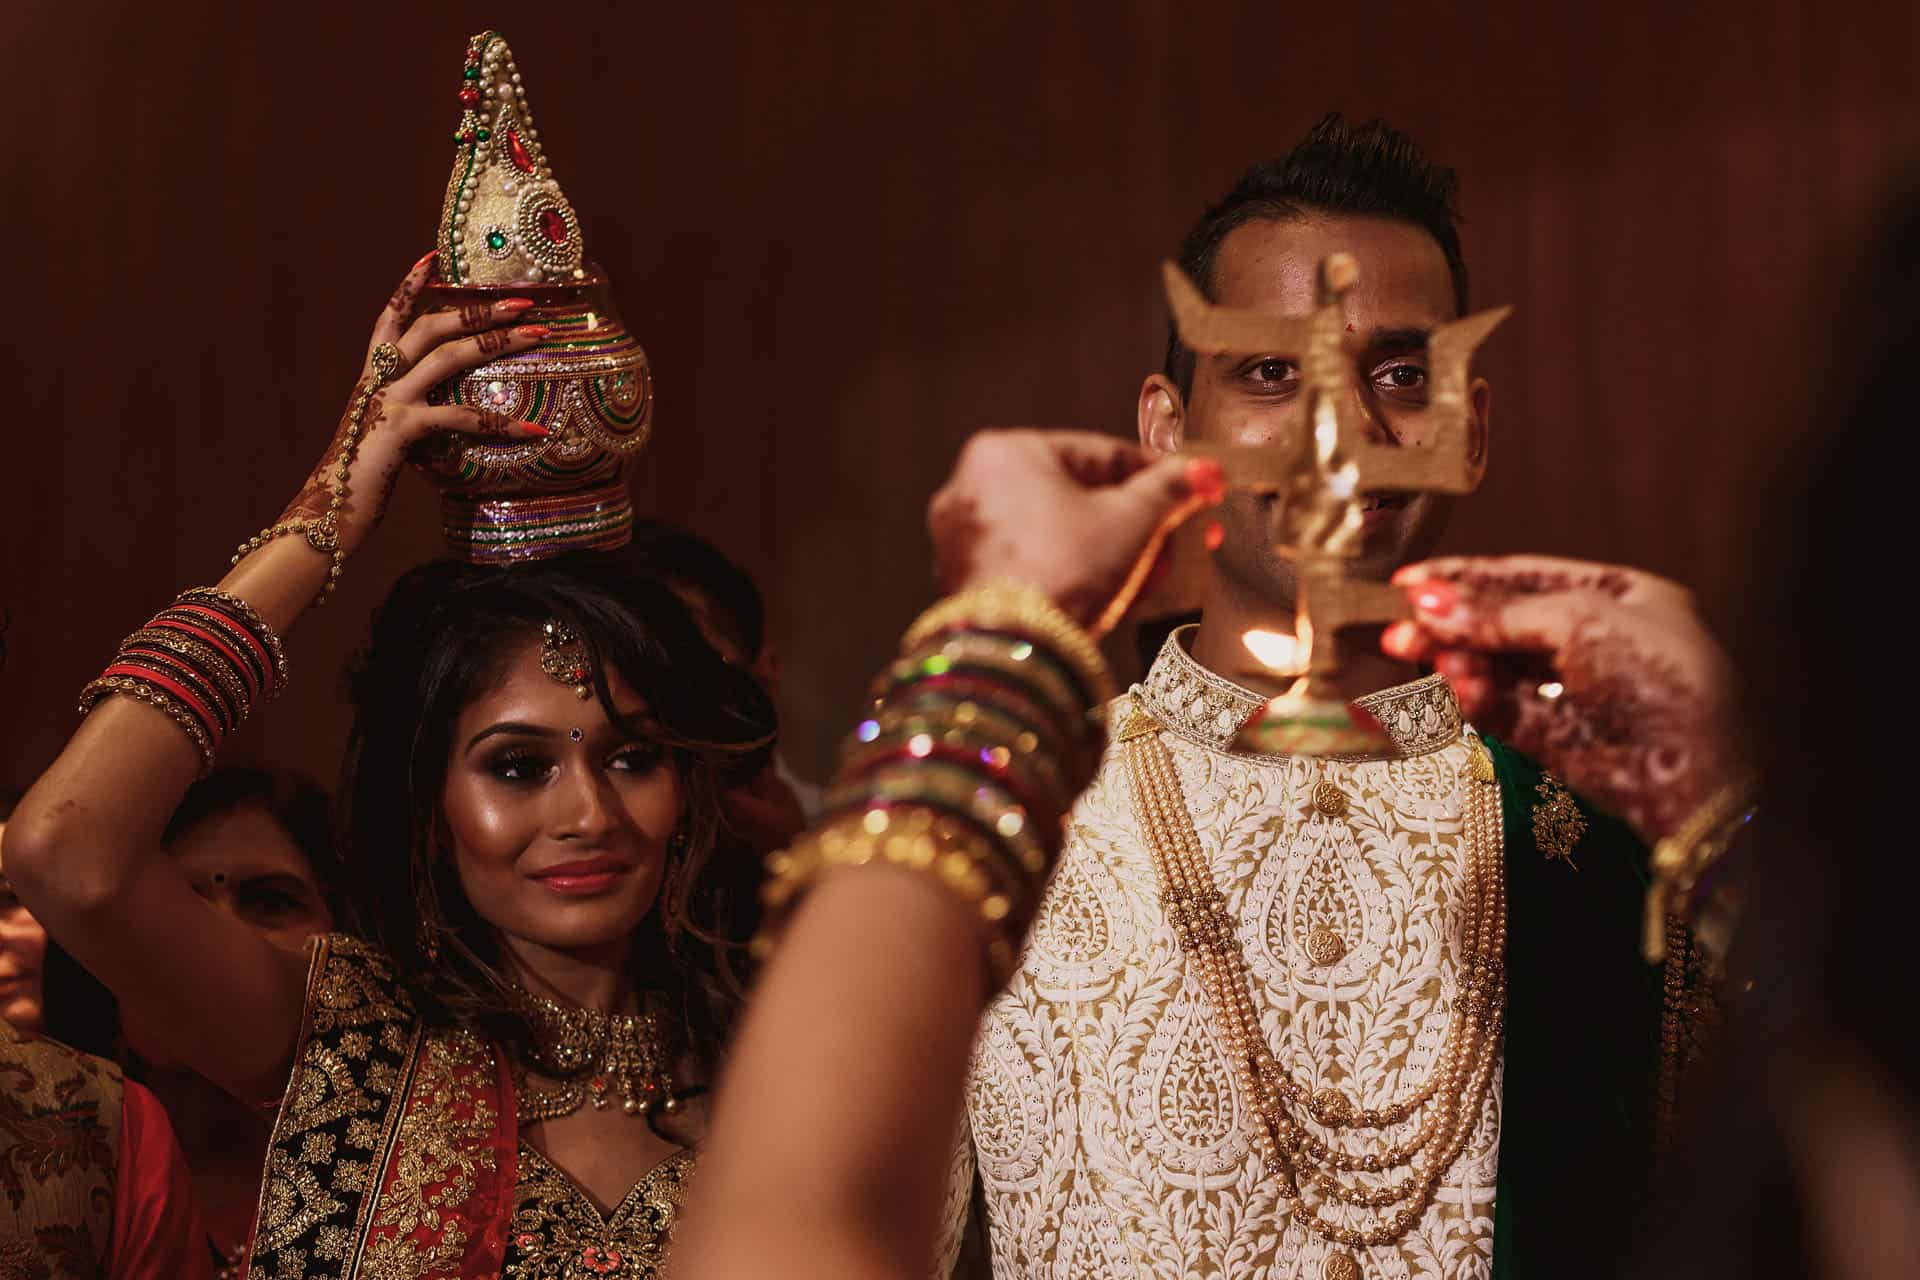 hilton t5 heathrow hindu wedding